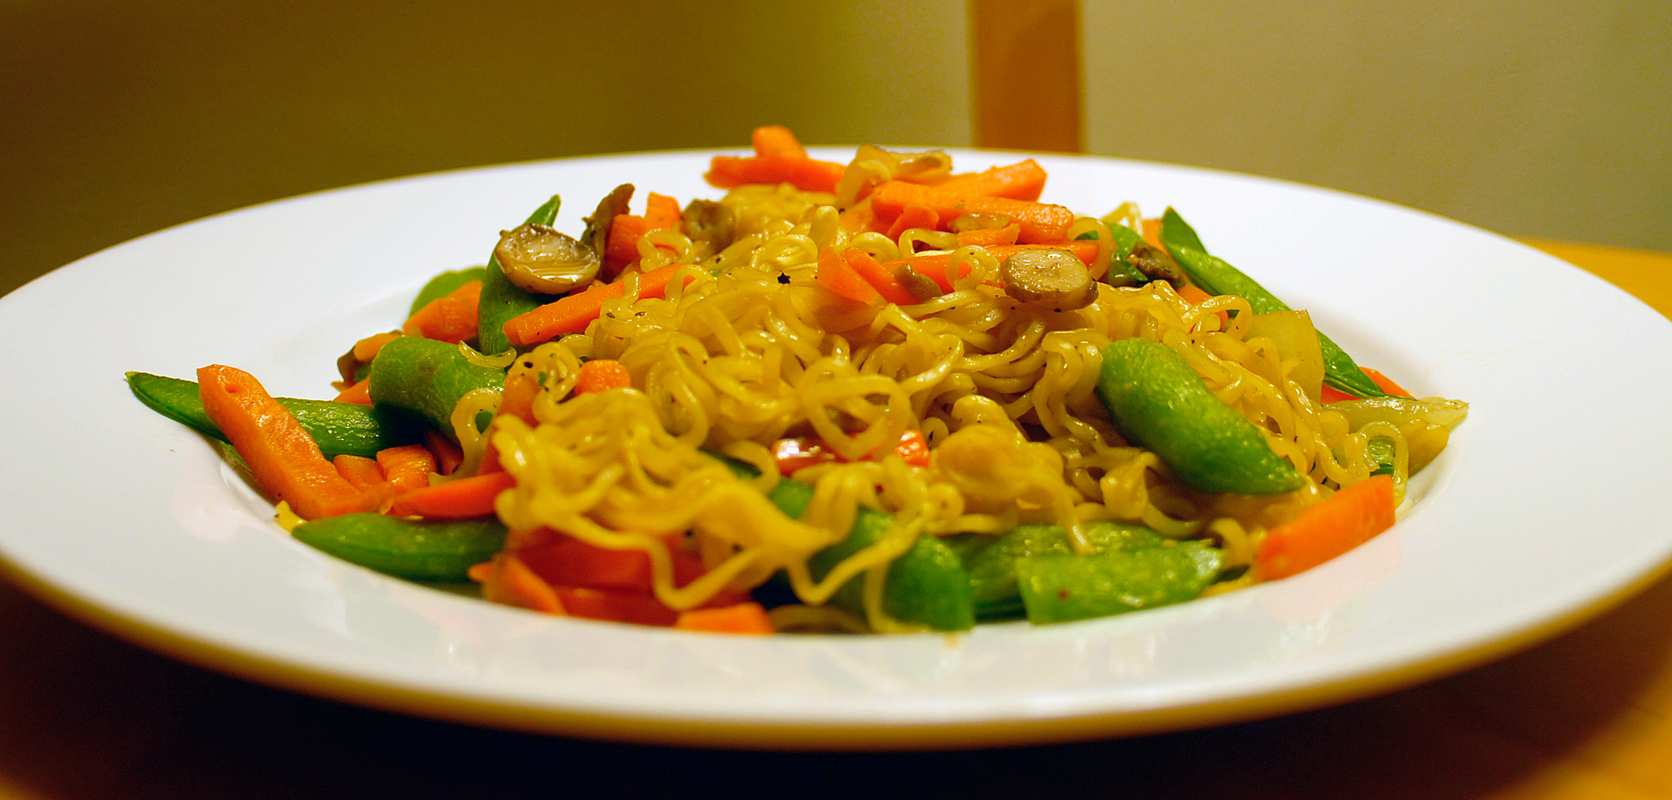 Stir fry is a flexible dish that can be made with a large variety of vegetables or proteins.  (credit: Anna Walsh/Associate Editor)